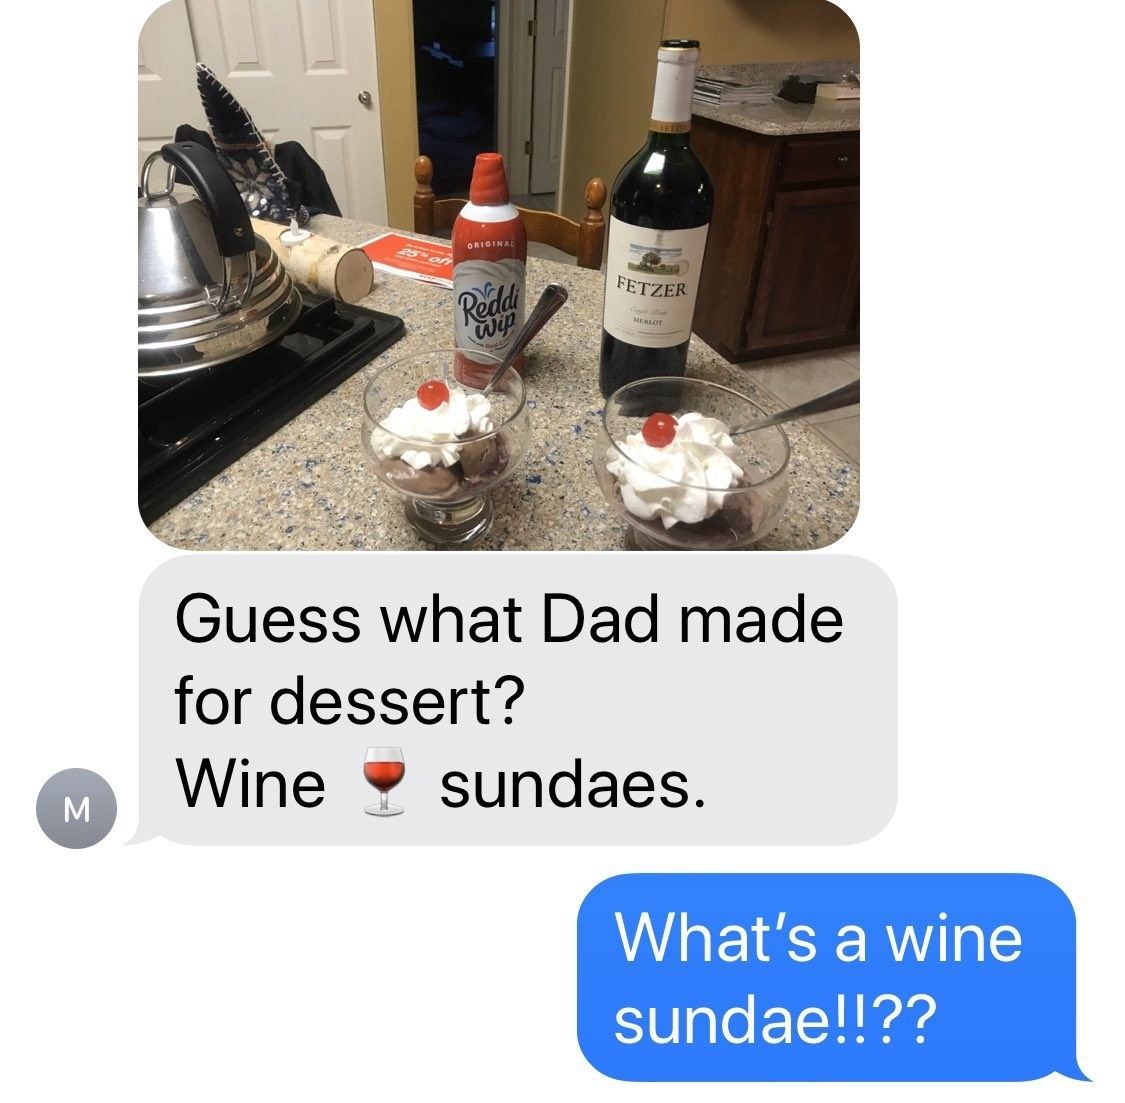 Jenna Fischer's mom texts her a picture of wine sundaes that Jenna's dad made